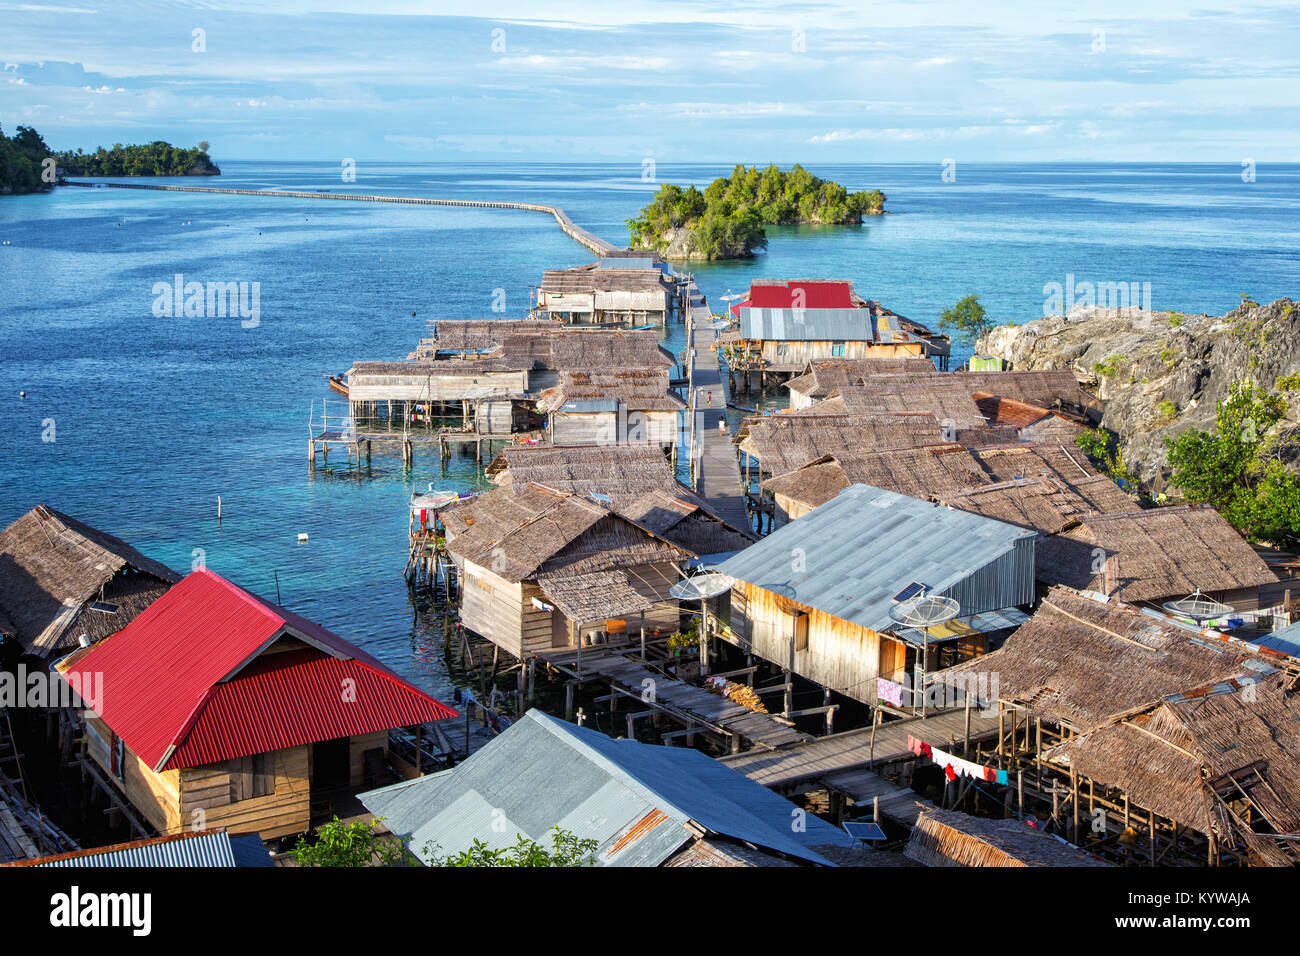 Stilt Village Pulau Papan in the gulf of Tomini at Togian Islands Sulawesi, Indonesia - Stock Image